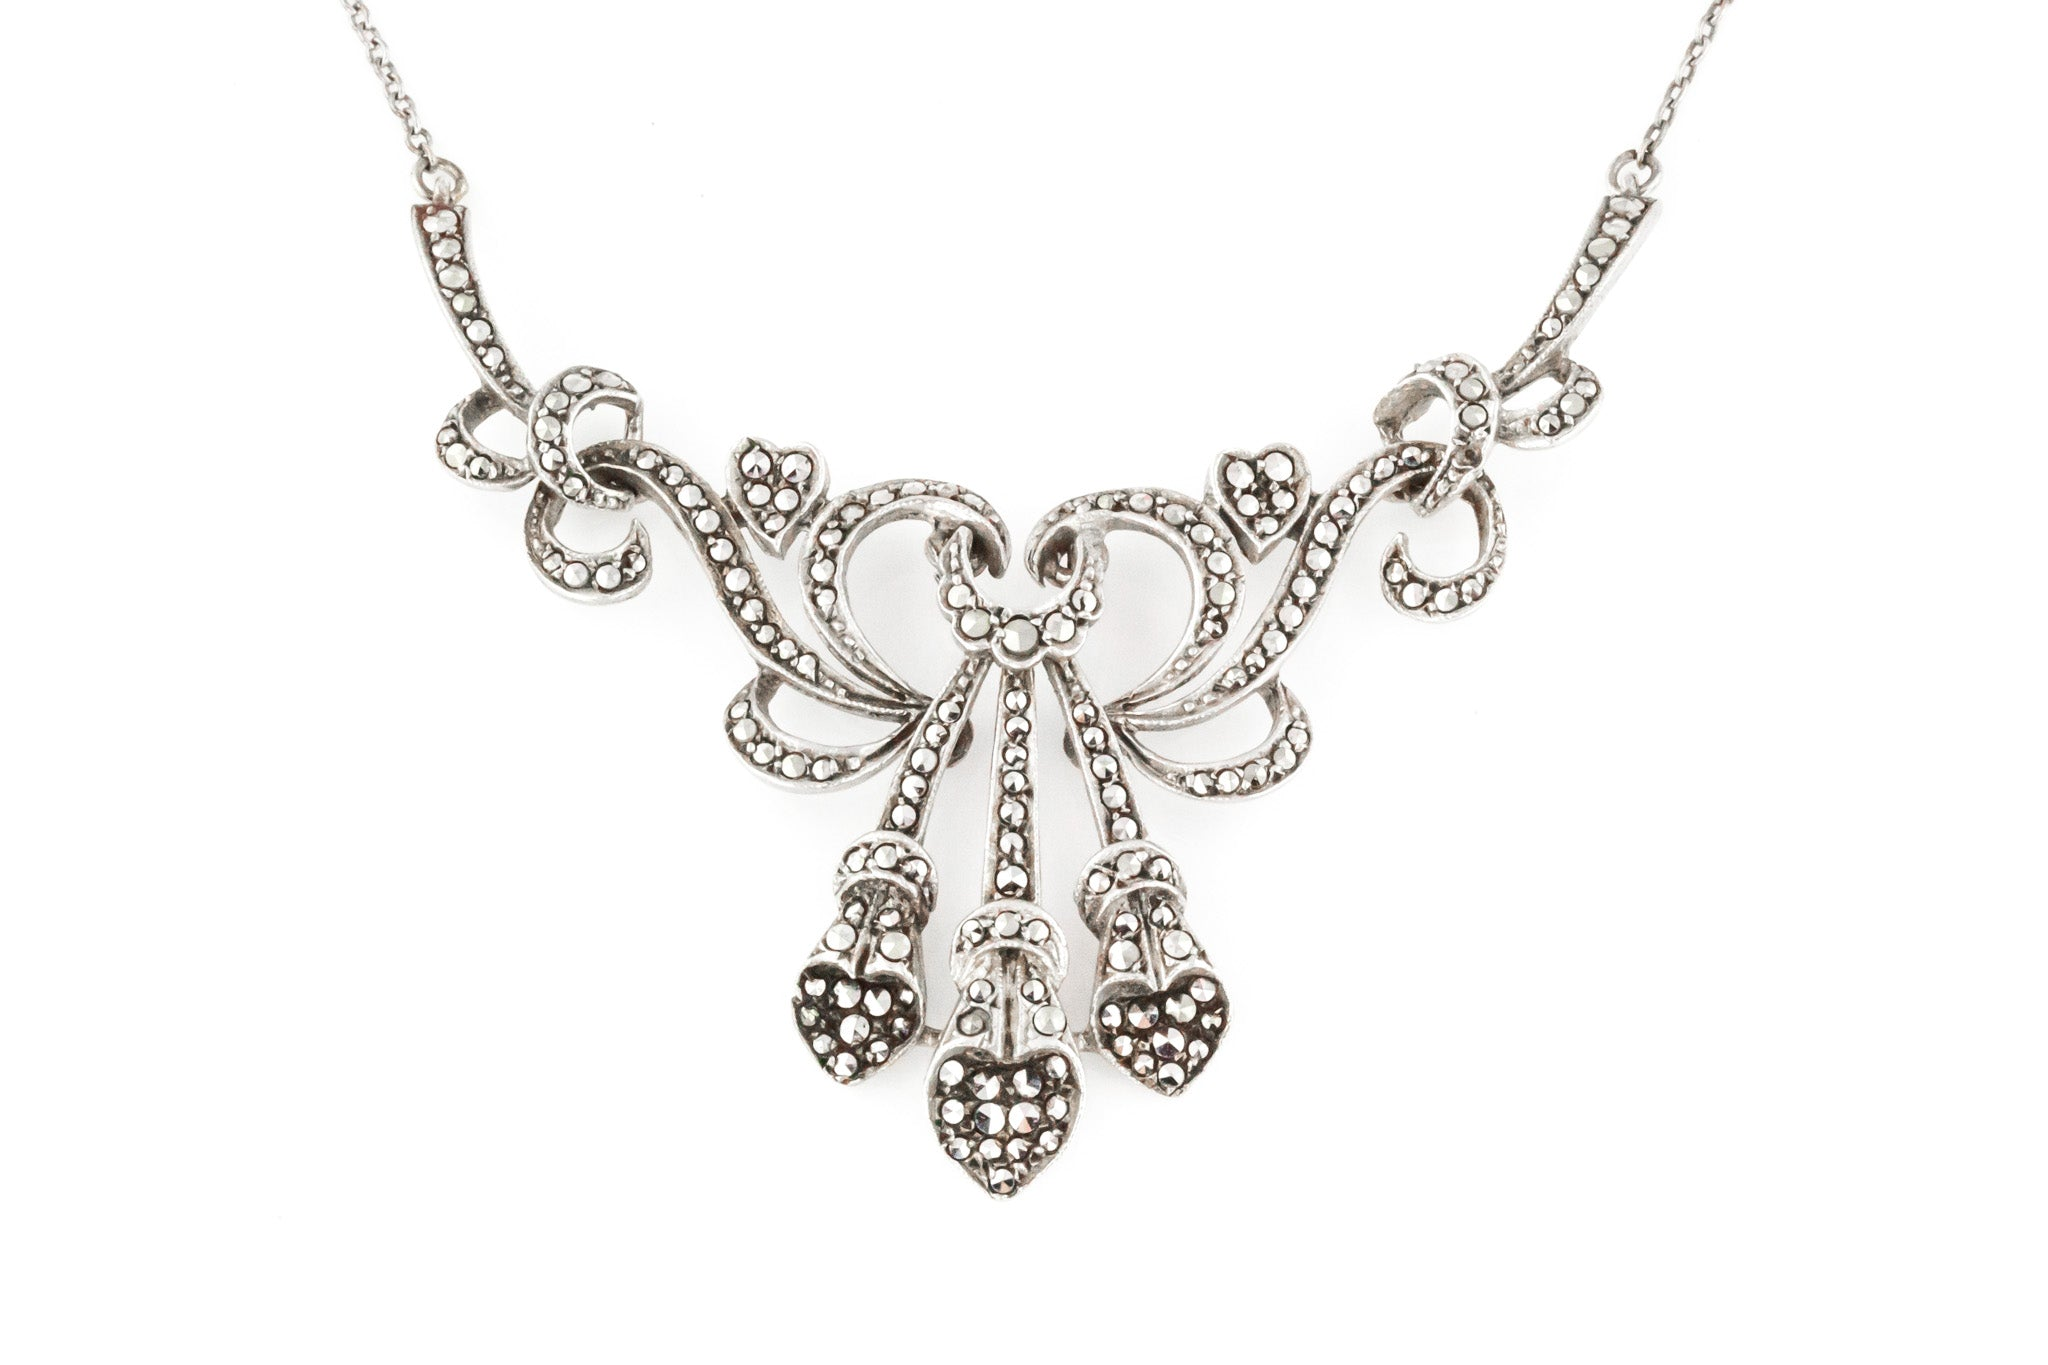 Art Nouveau Silver Marcasite Necklace c.1910